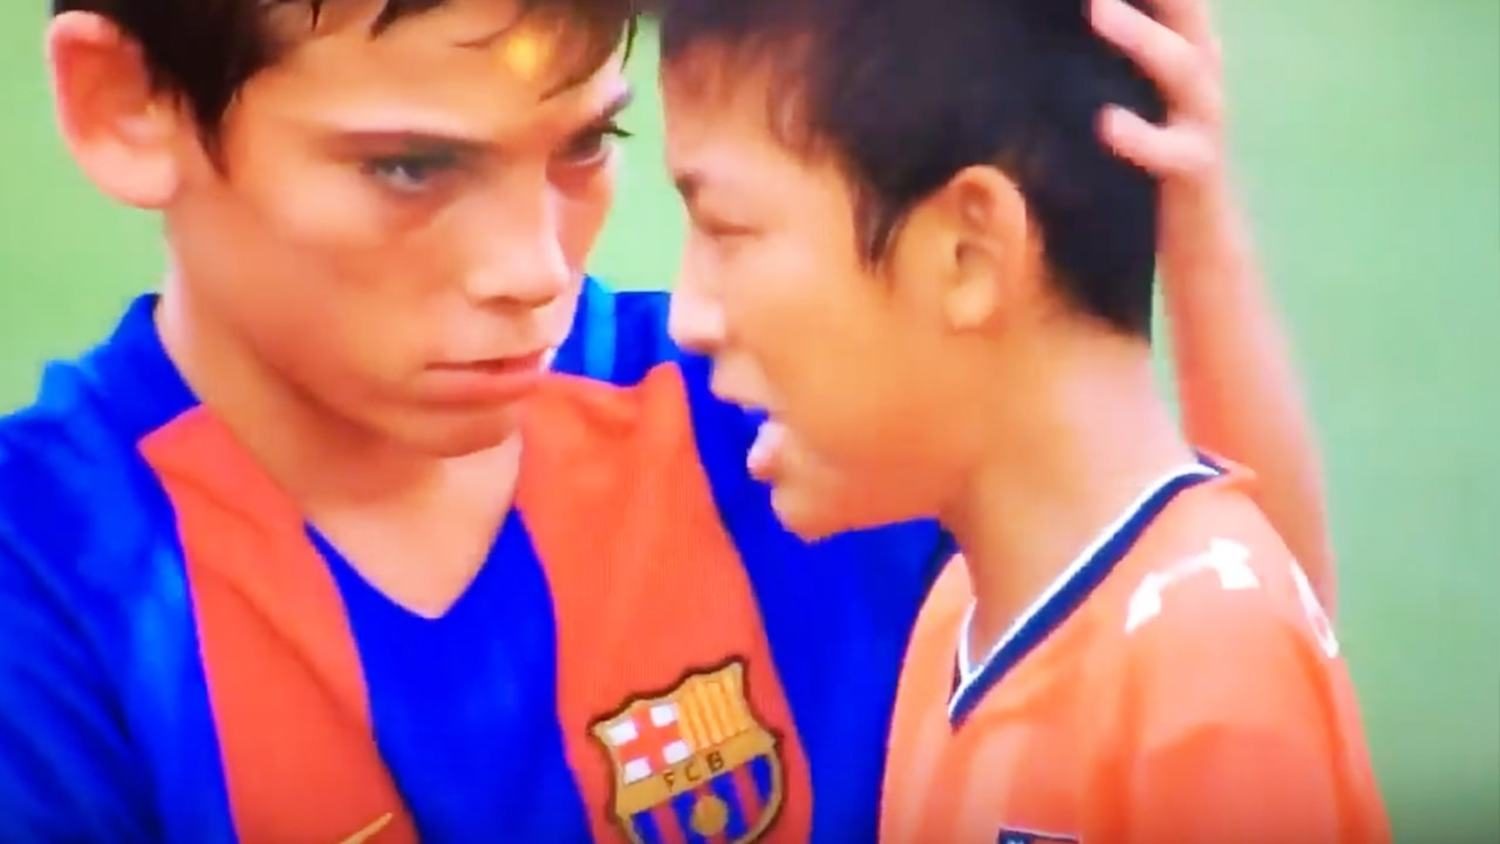 Barcelona Youngsters Amazing Sportsmanship After Beating Opposition